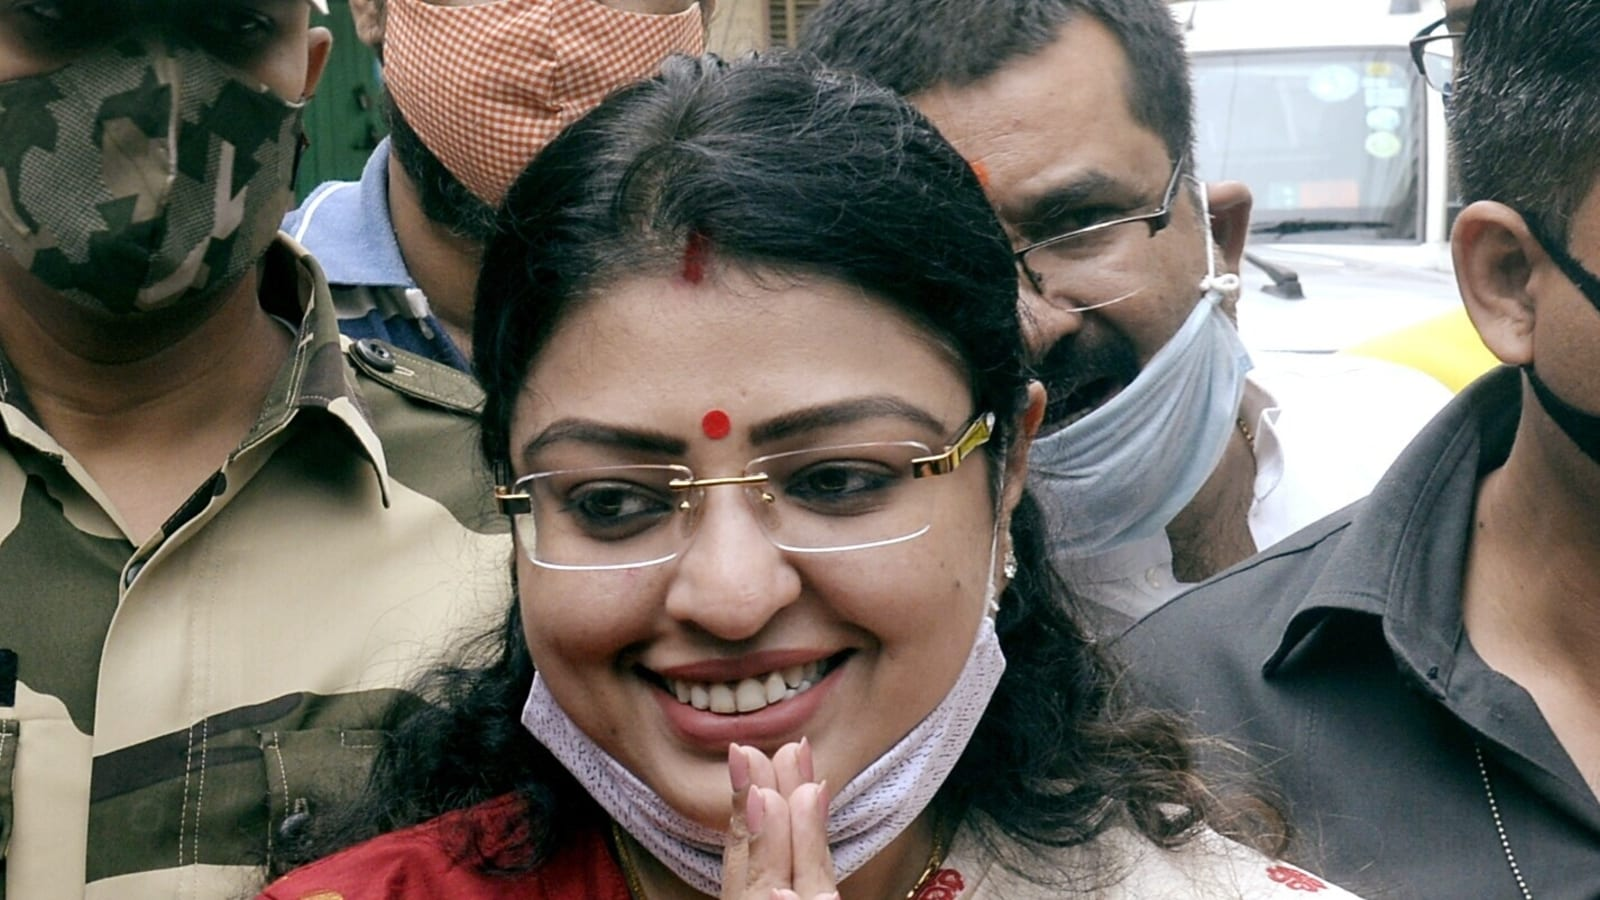 BJP's Priyanka Tibrewal alleges Mamata didn't disclose pending cases; objects to her nomination for Bhabanipur bypolls